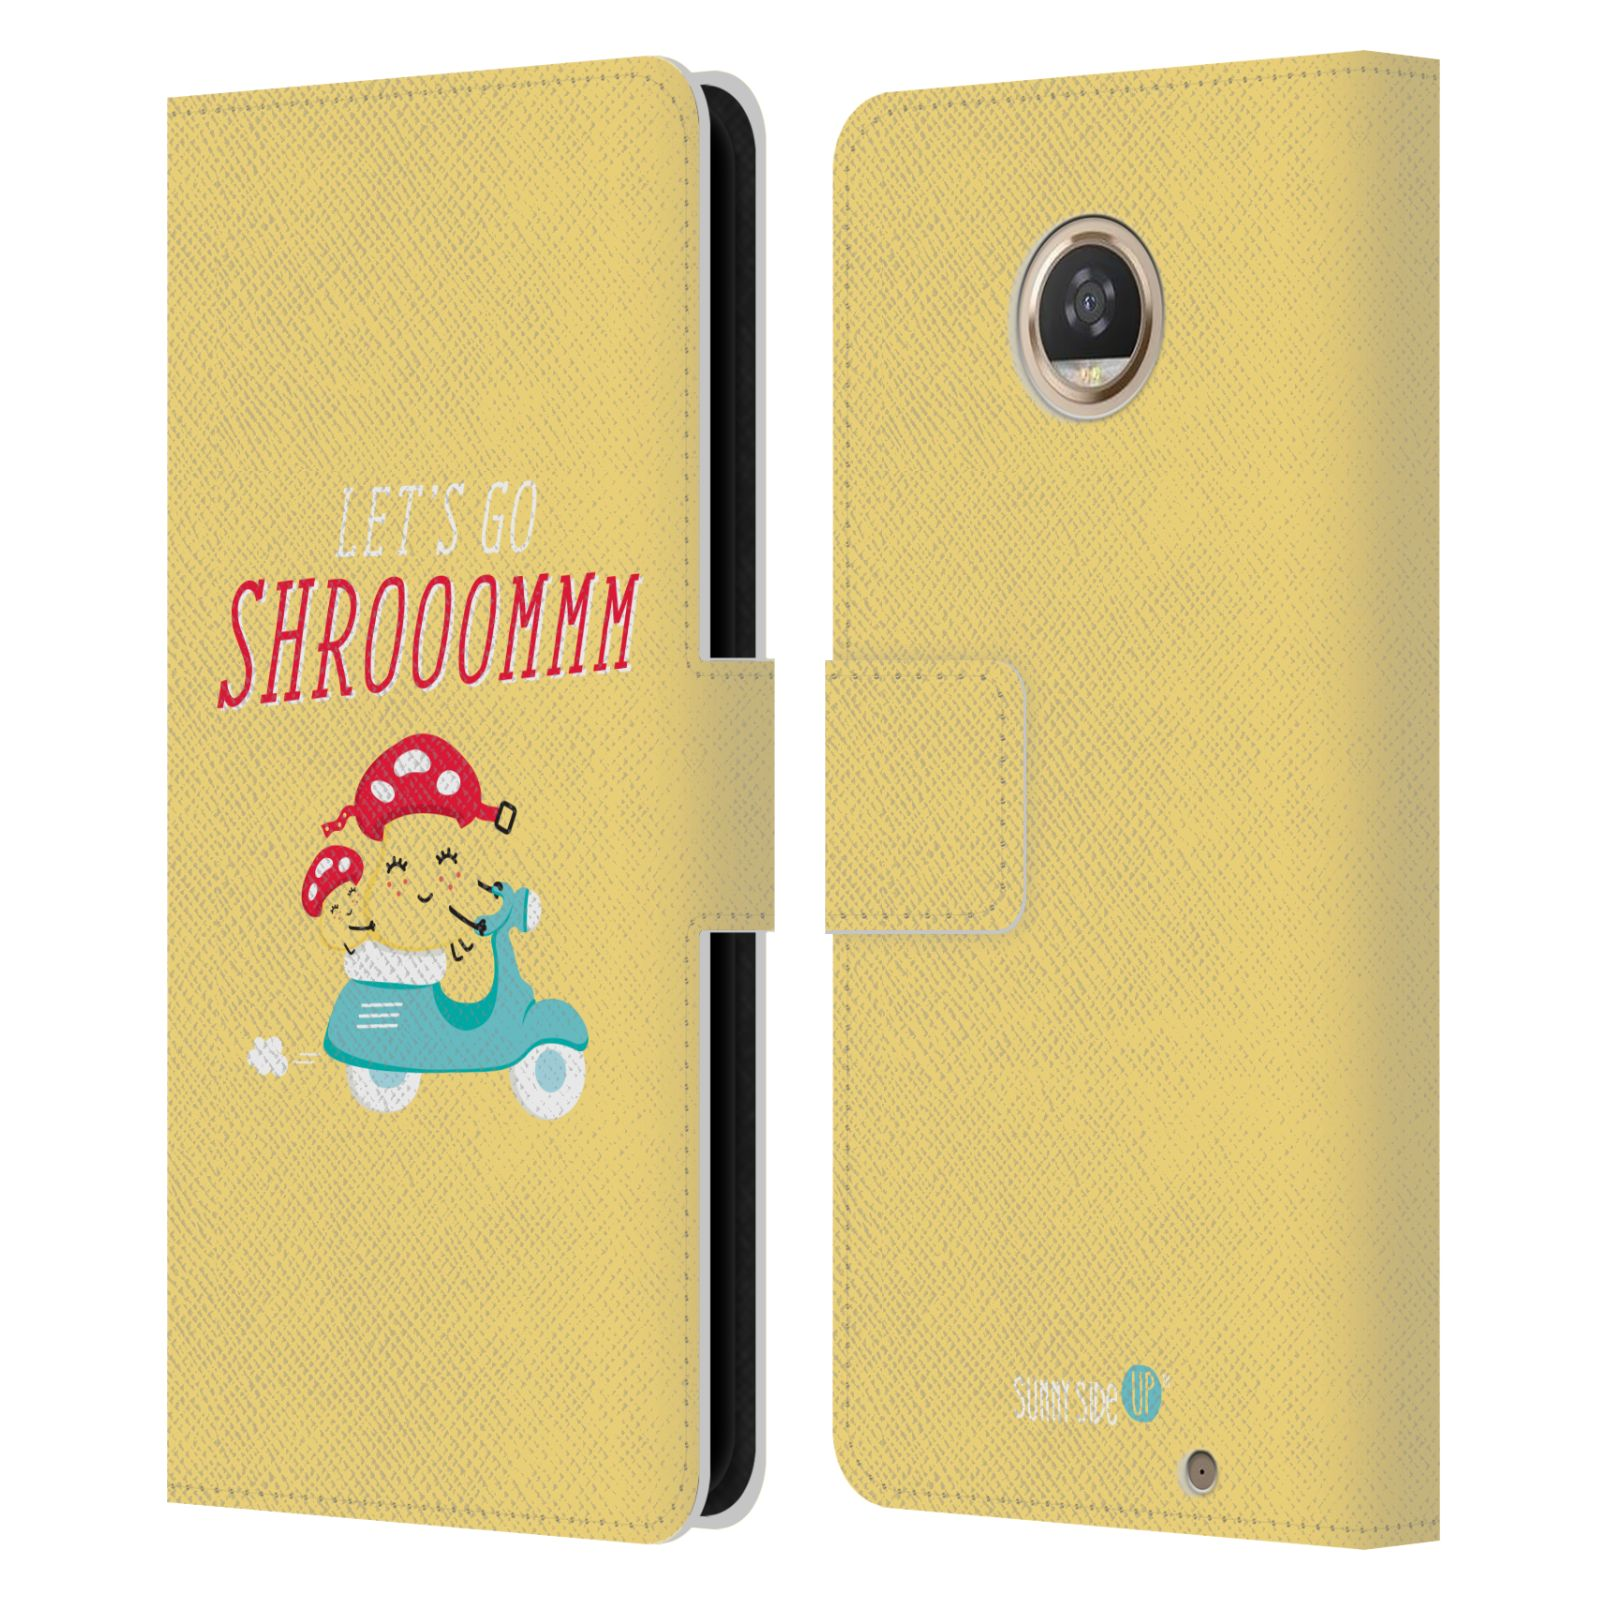 OFFICIAL-MUY-POP-SUNNY-SIDE-UP-MIX-LEATHER-BOOK-WALLET-CASE-FOR-MOTOROLA-PHONES